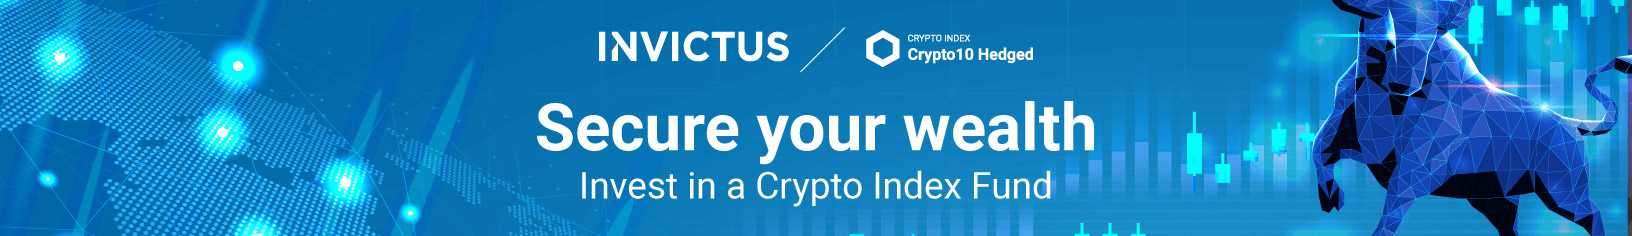 Secure your wealth: Invest in a cryptocurrency index fund